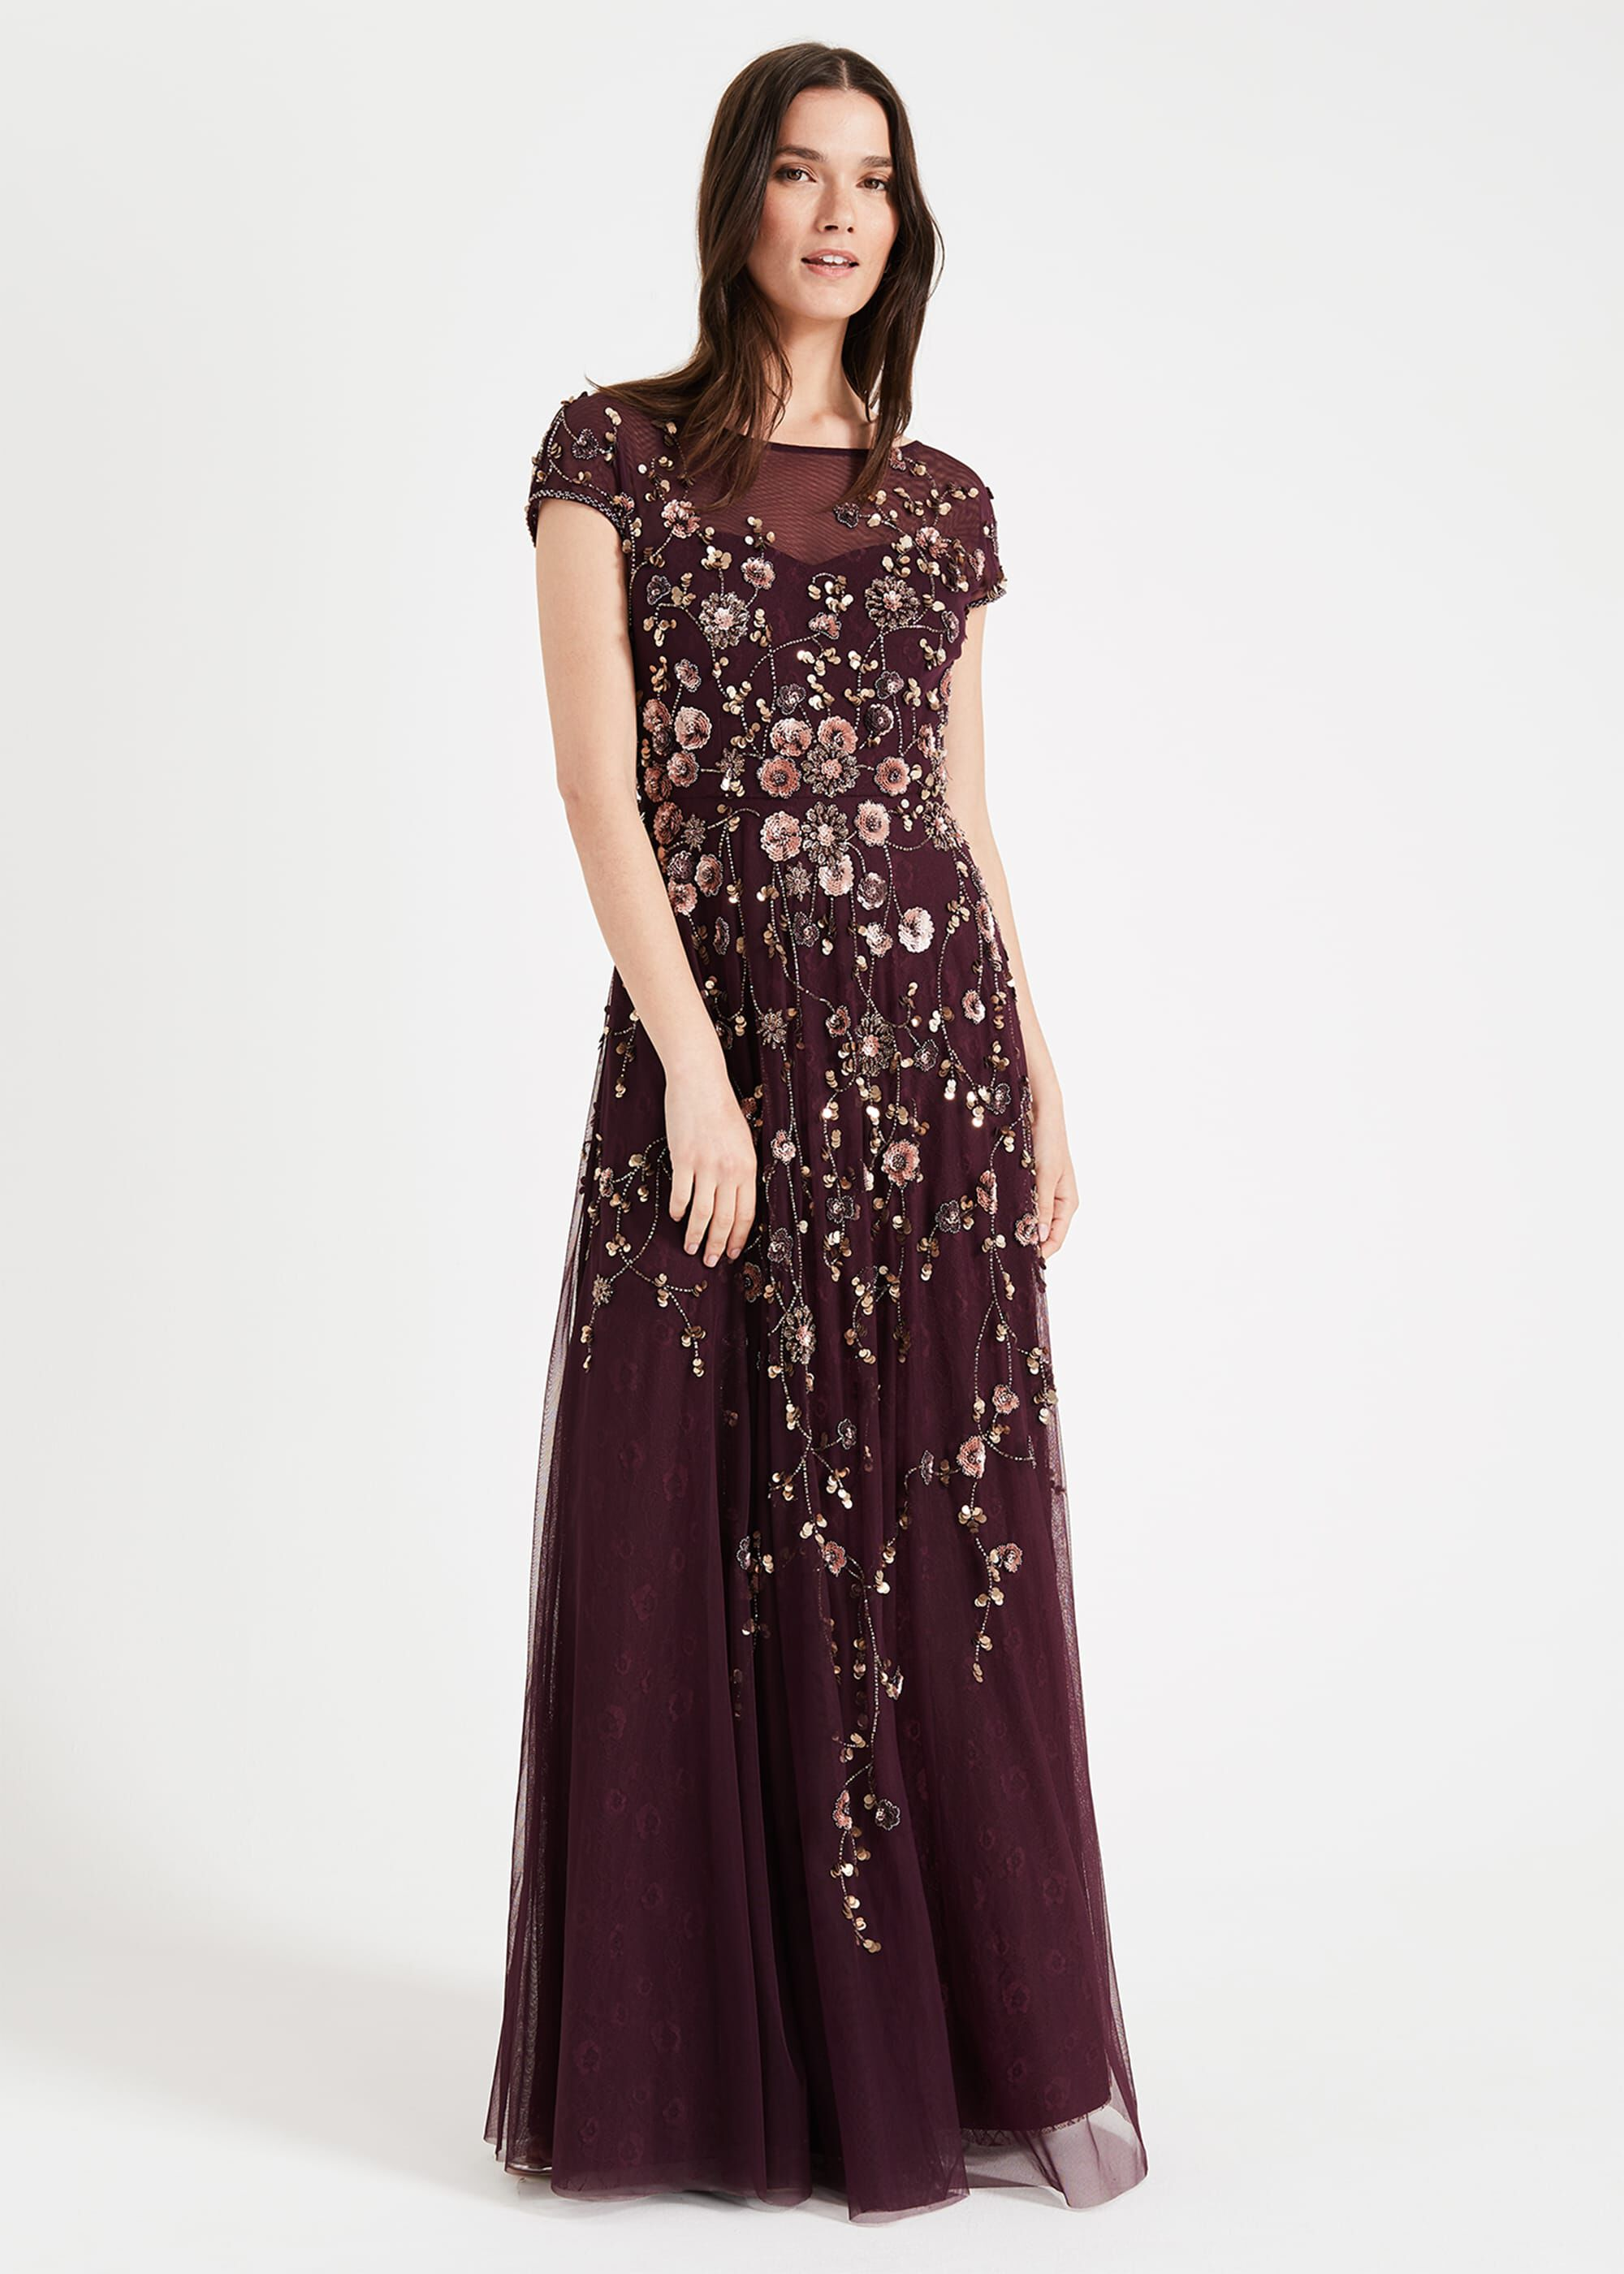 Phase Eight Alanis Floral Maxi Dress, Red, Maxi, Occasion Dress